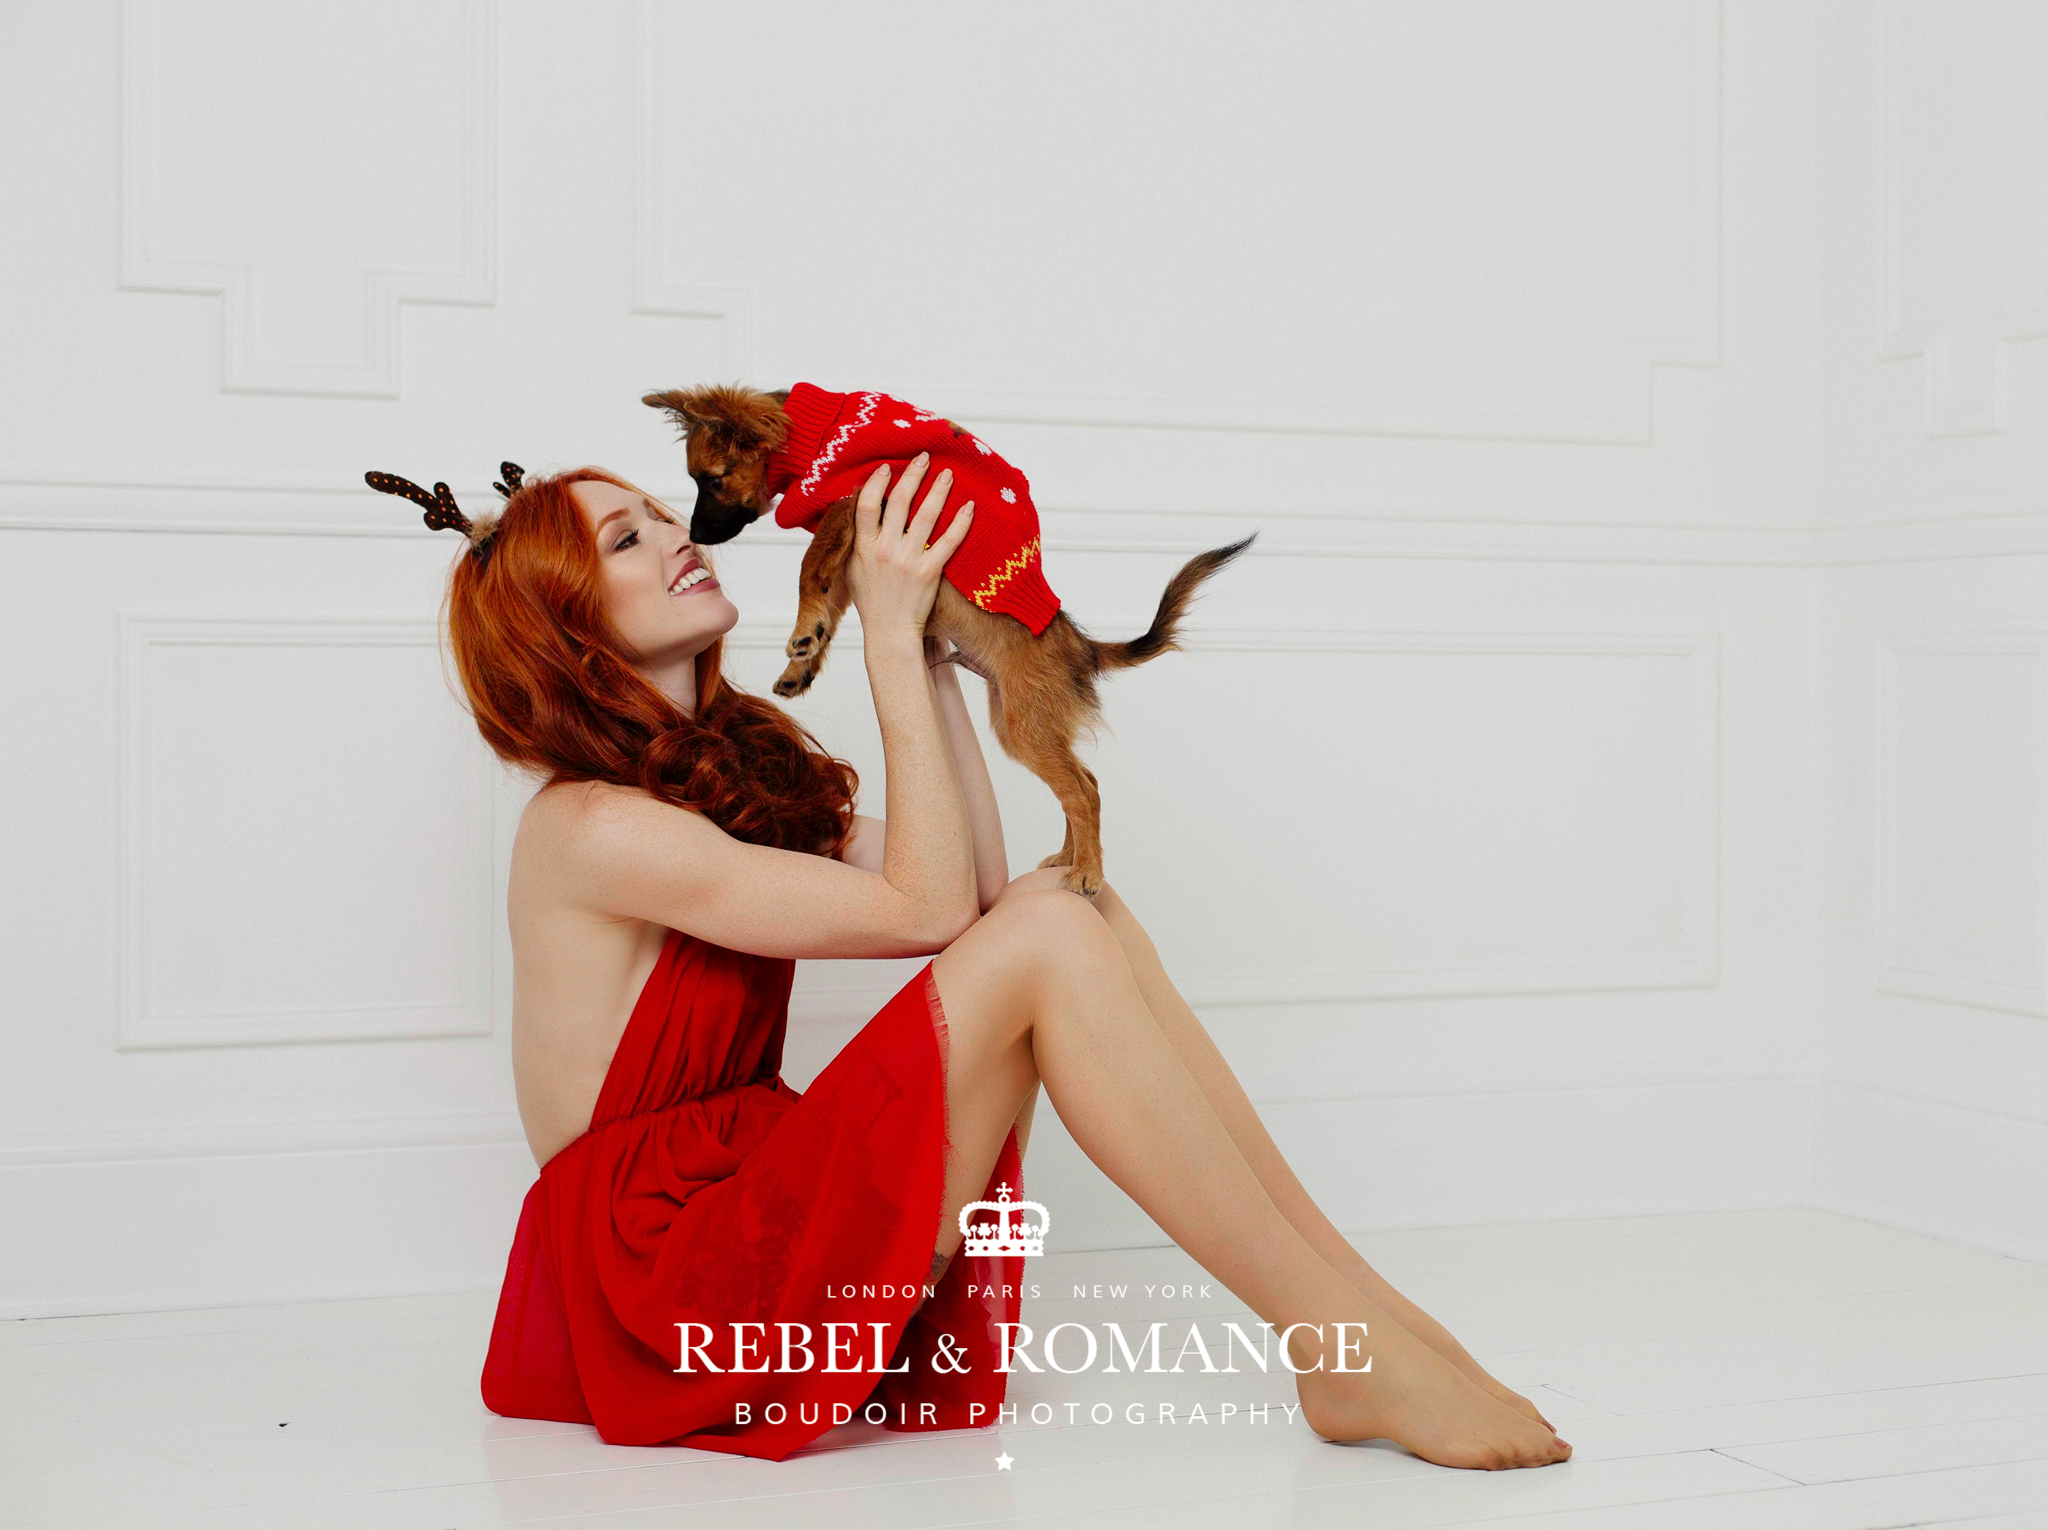 Kat and puppy Ralf in red for a Christmas inspired boudoir session.